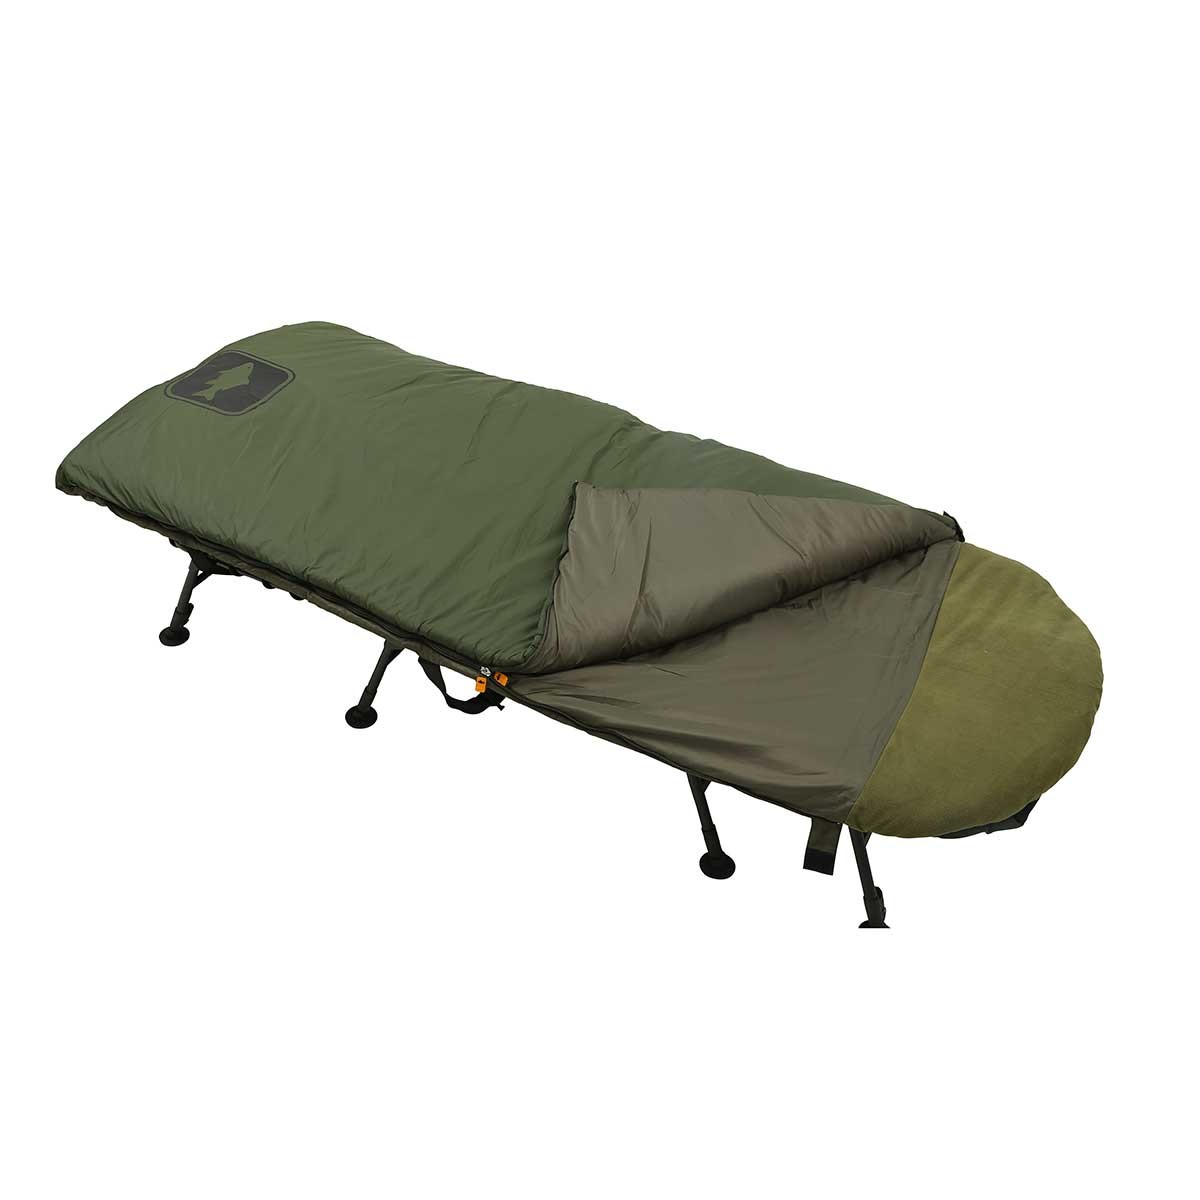 Spalna vreča Prologic Thermo Armour 4S Sleeping Bag